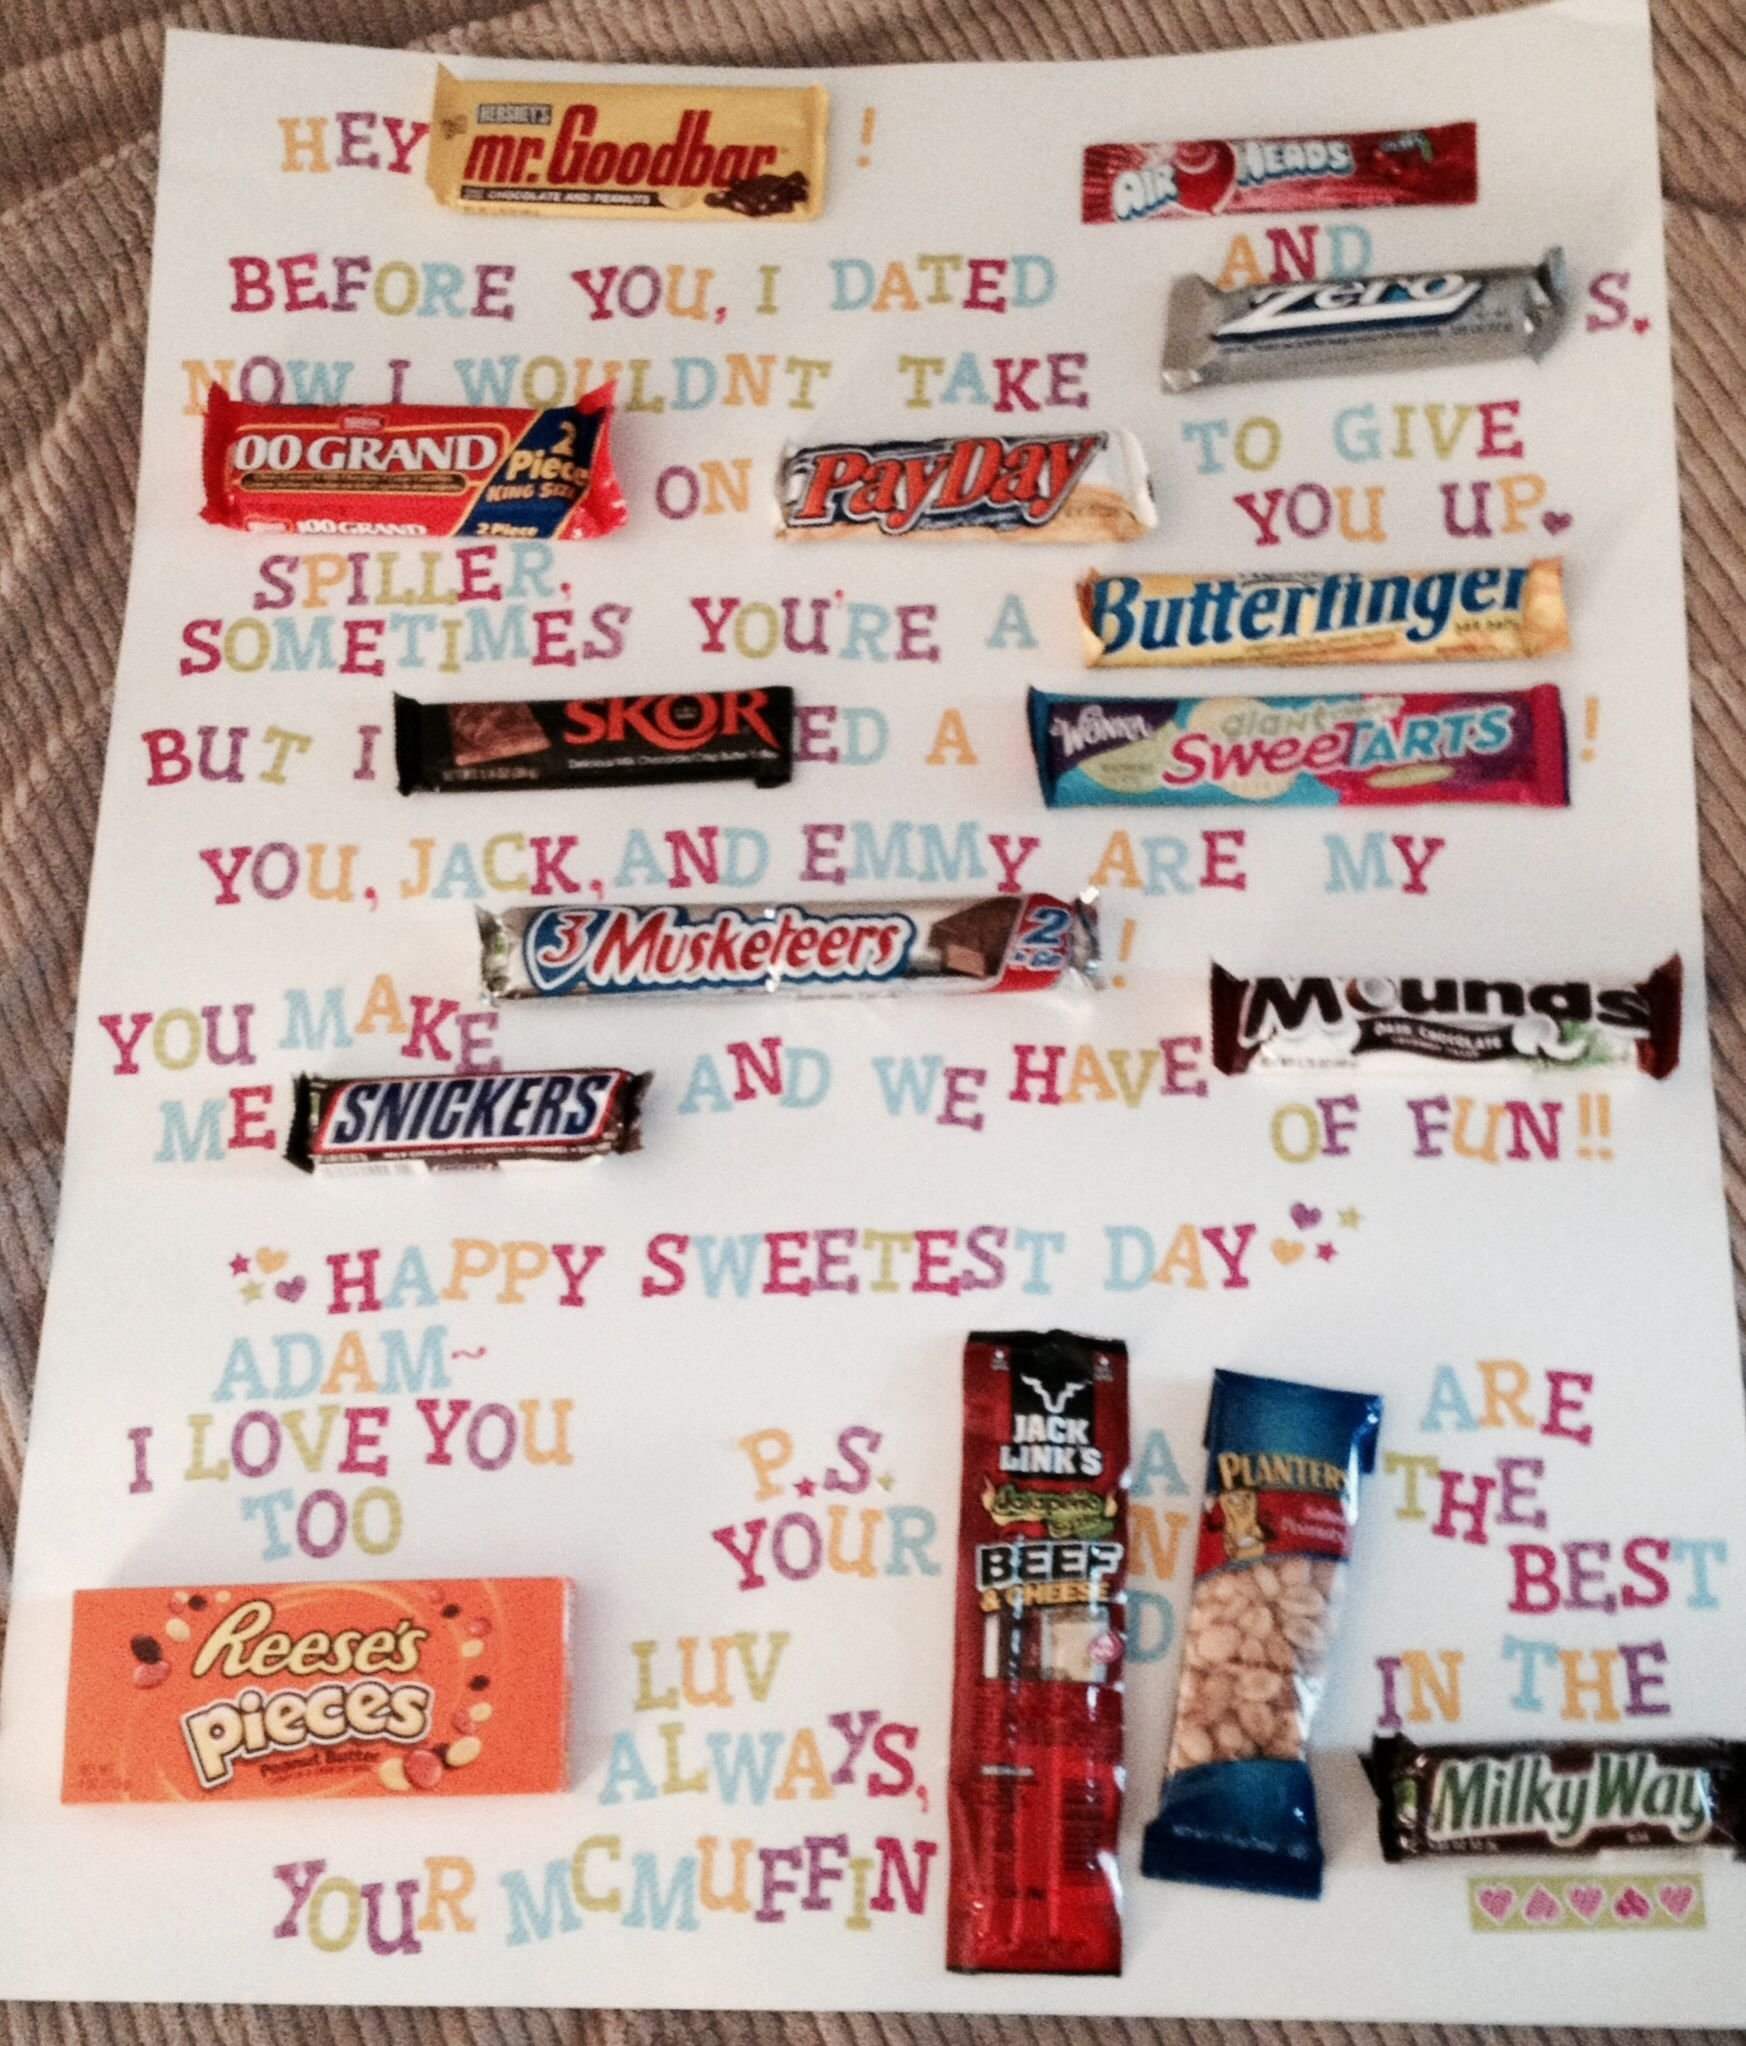 10 Attractive Sweetest Day Gift Ideas Boyfriend sweetest day candy gram for my boyfriend lovenote valentinesday 1 2020